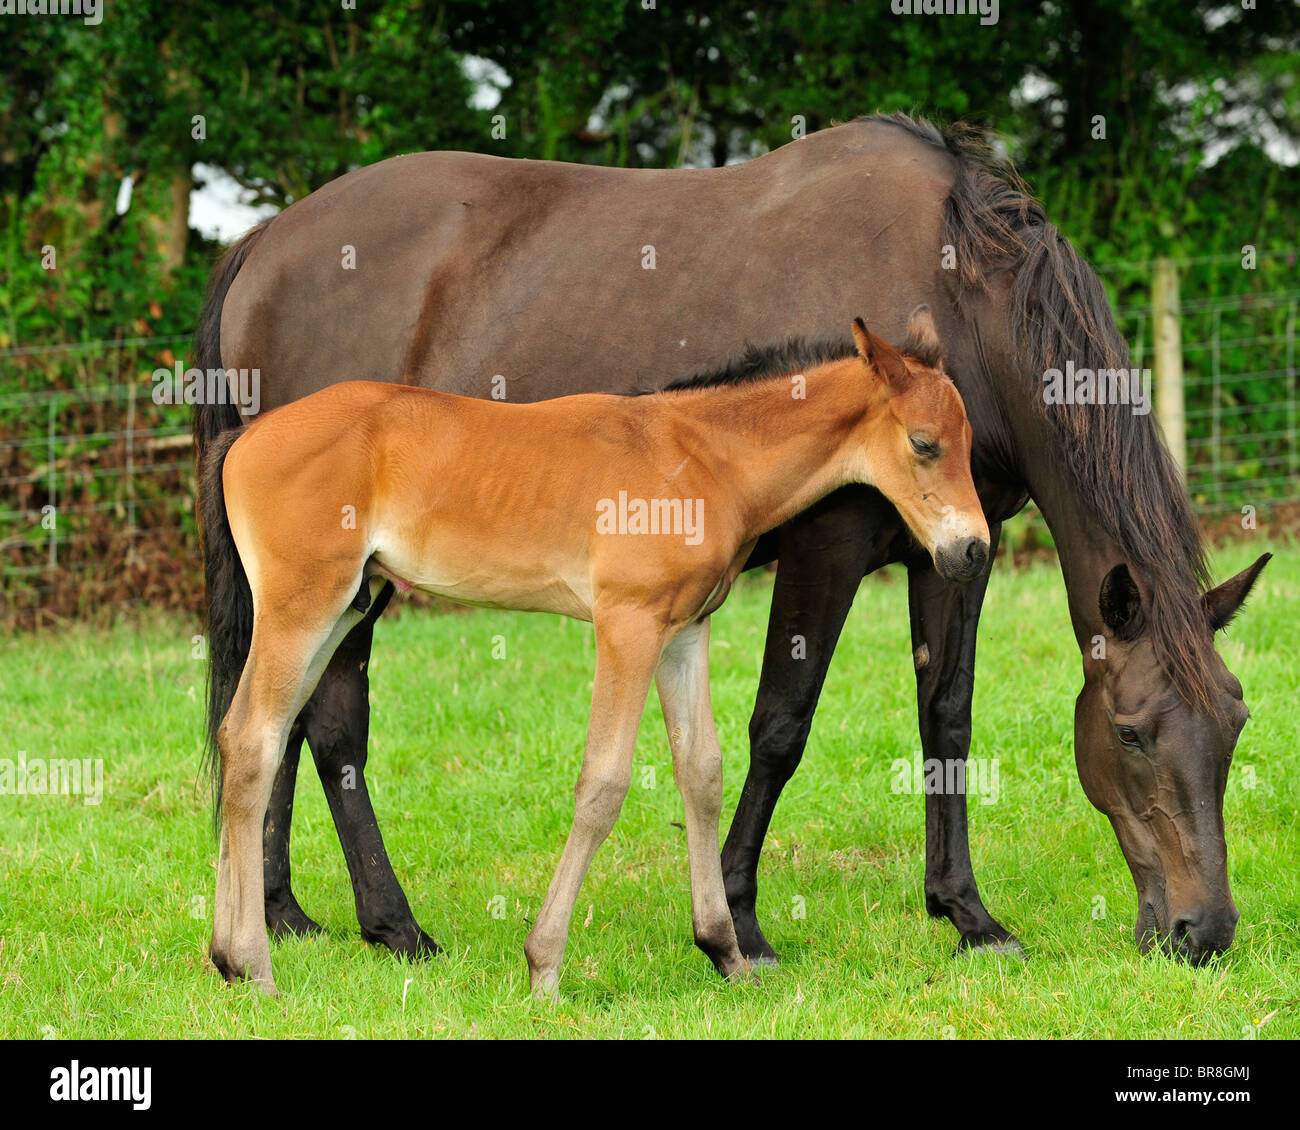 mare and foal - Stock Image